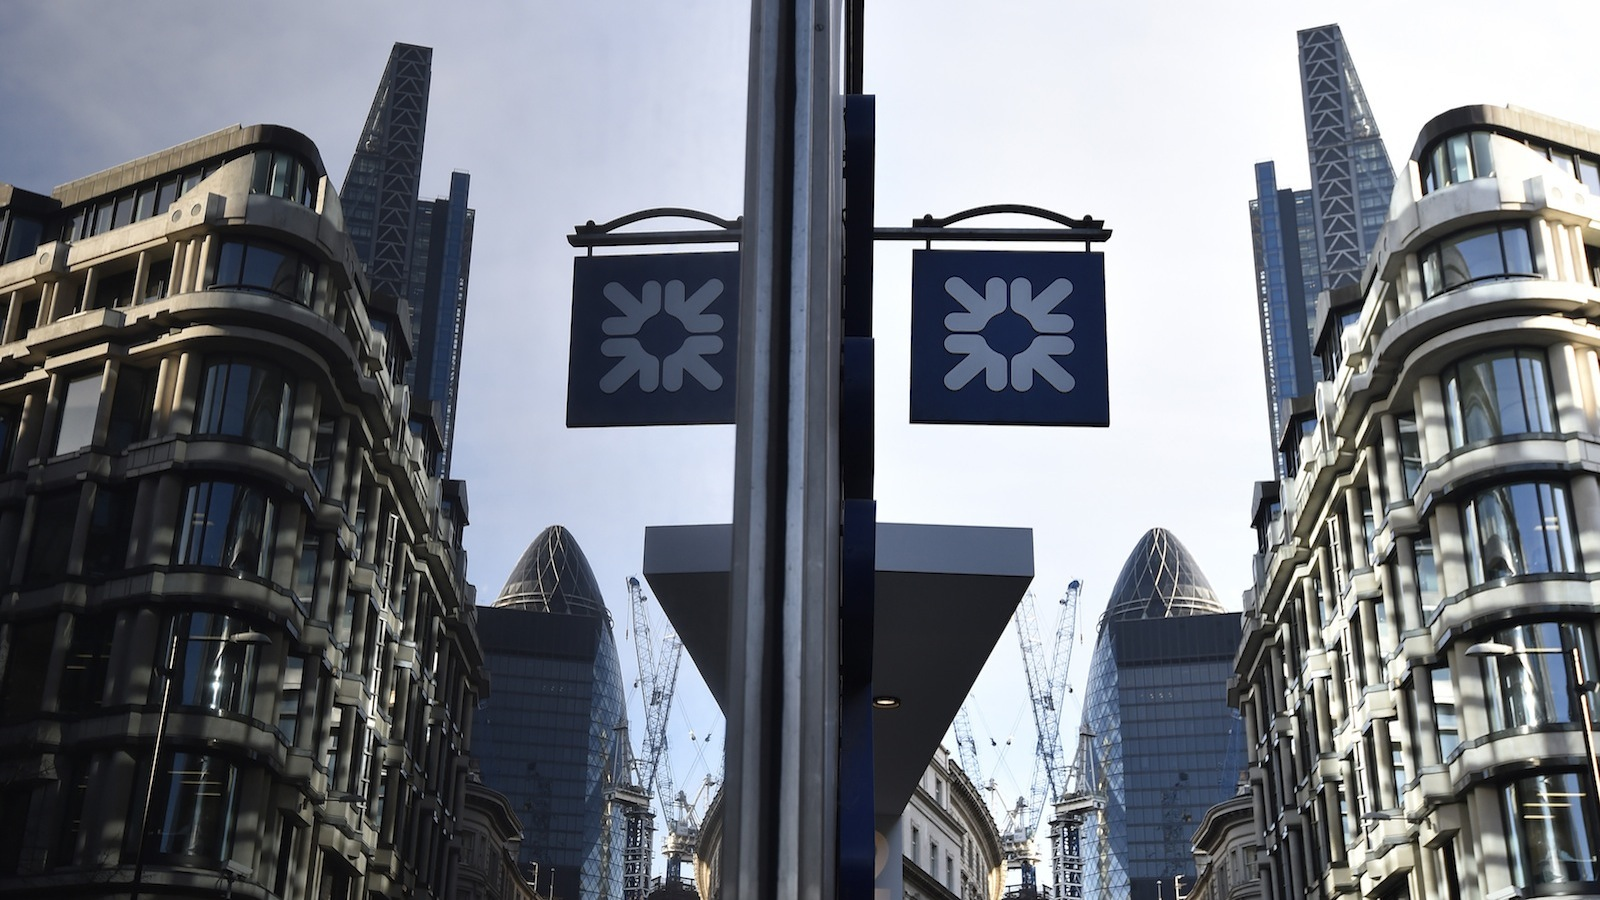 A branch of the Royal Bank of Scotland is seen in the City of London December 16, 2014. The Bank of England warned Britain's banks they should expect a more exacting test next year of their defences in the event of a crisis abroad, after state-backed lenders narrowly passed a debut check focused on potential domestic strains. Lloyds and rival Royal Bank of Scotland scraped through this year's test, proving they could withstand the regulator's doomsday scenario of plummeting UK house prices and soaring unemployment, after both took pre-emptive measures to shrink their balance sheets and raise capital. REUTERS/Toby Melville